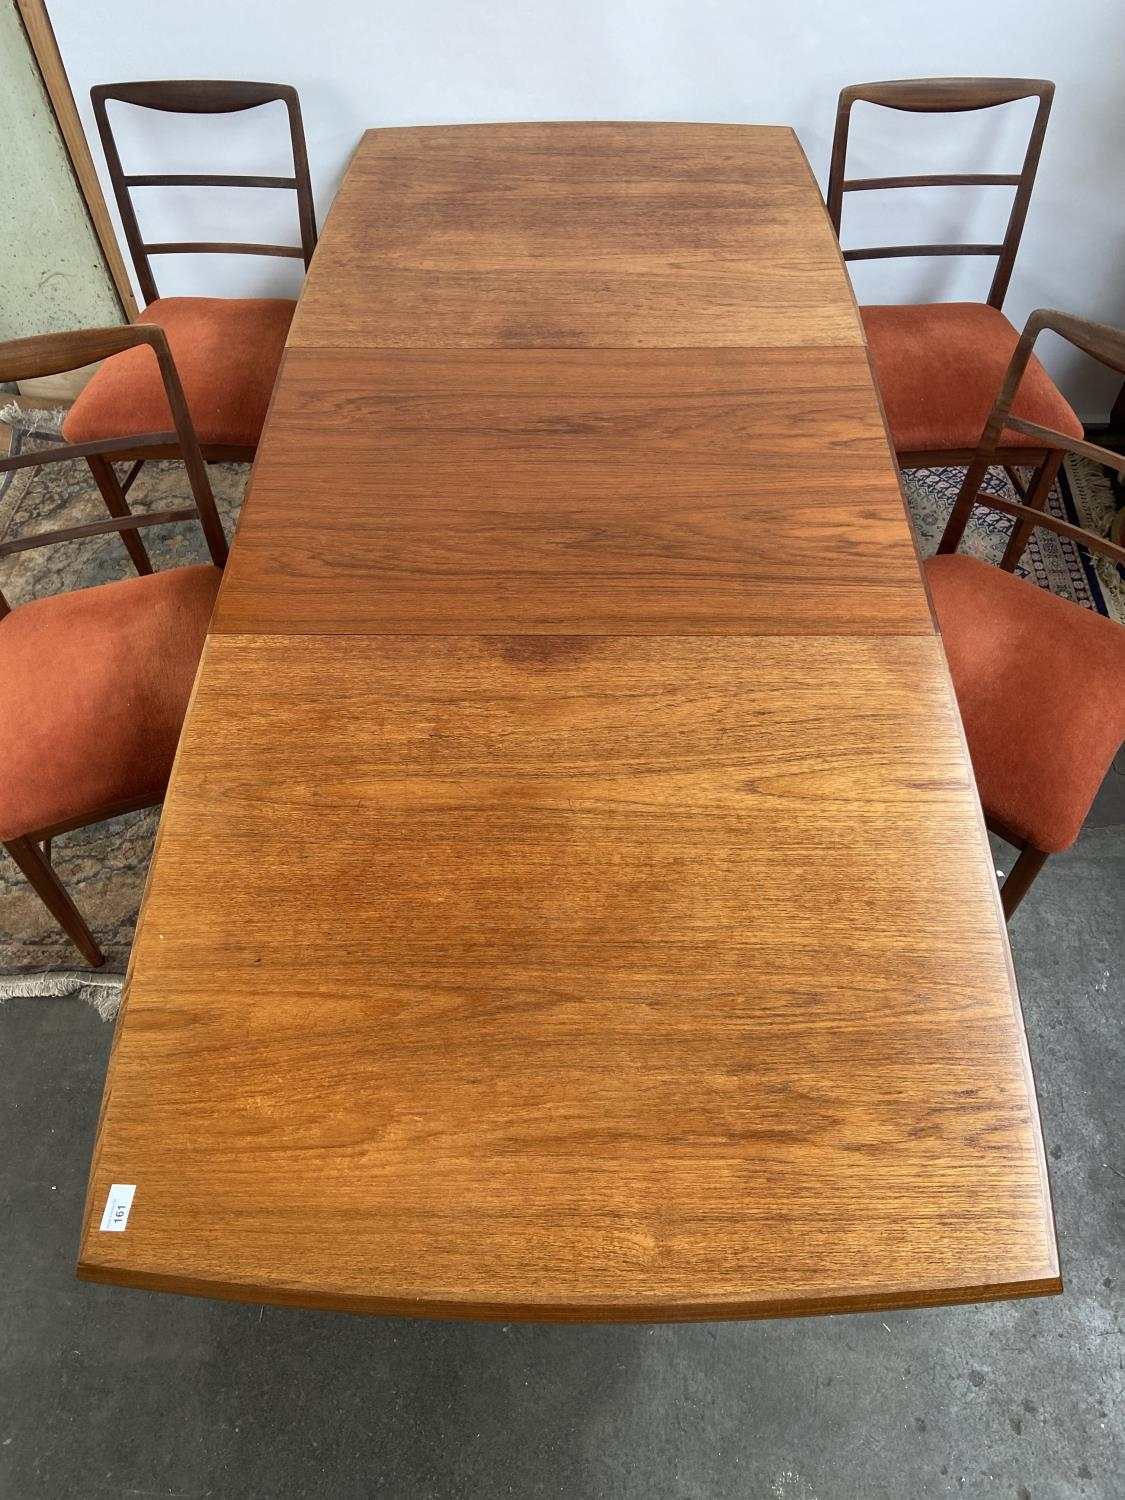 A Retro mid century teak dining table and four matching chairs produced by Vanson. [Table extended - Image 2 of 13